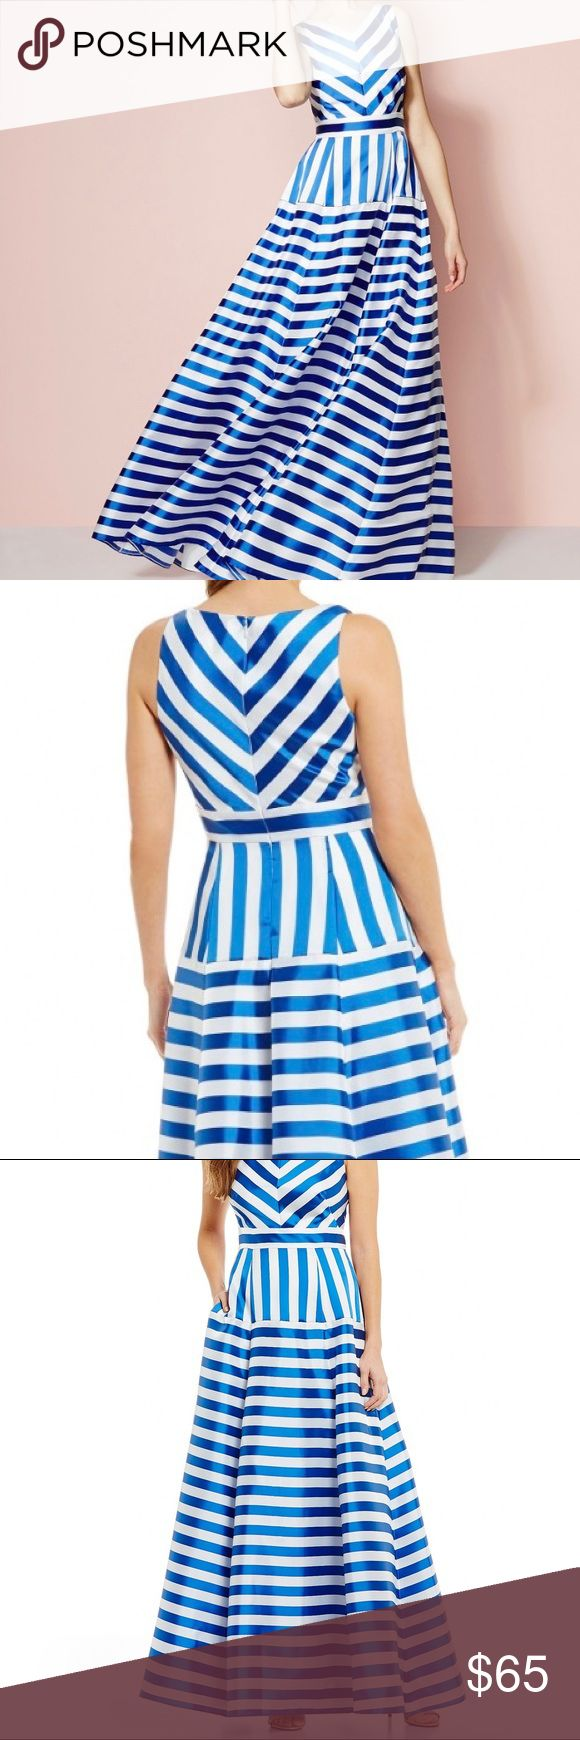 Eliza J V-Neck jacquard Striped Ball Gown - sz 6 From Eliza J, this ballgown features: V-neckline Sleeveless Center back zipper closure Inset waist Polyester/nylon/acetate  Size 6. Fits true to size Brand new without tags Eliza J Dresses Maxi